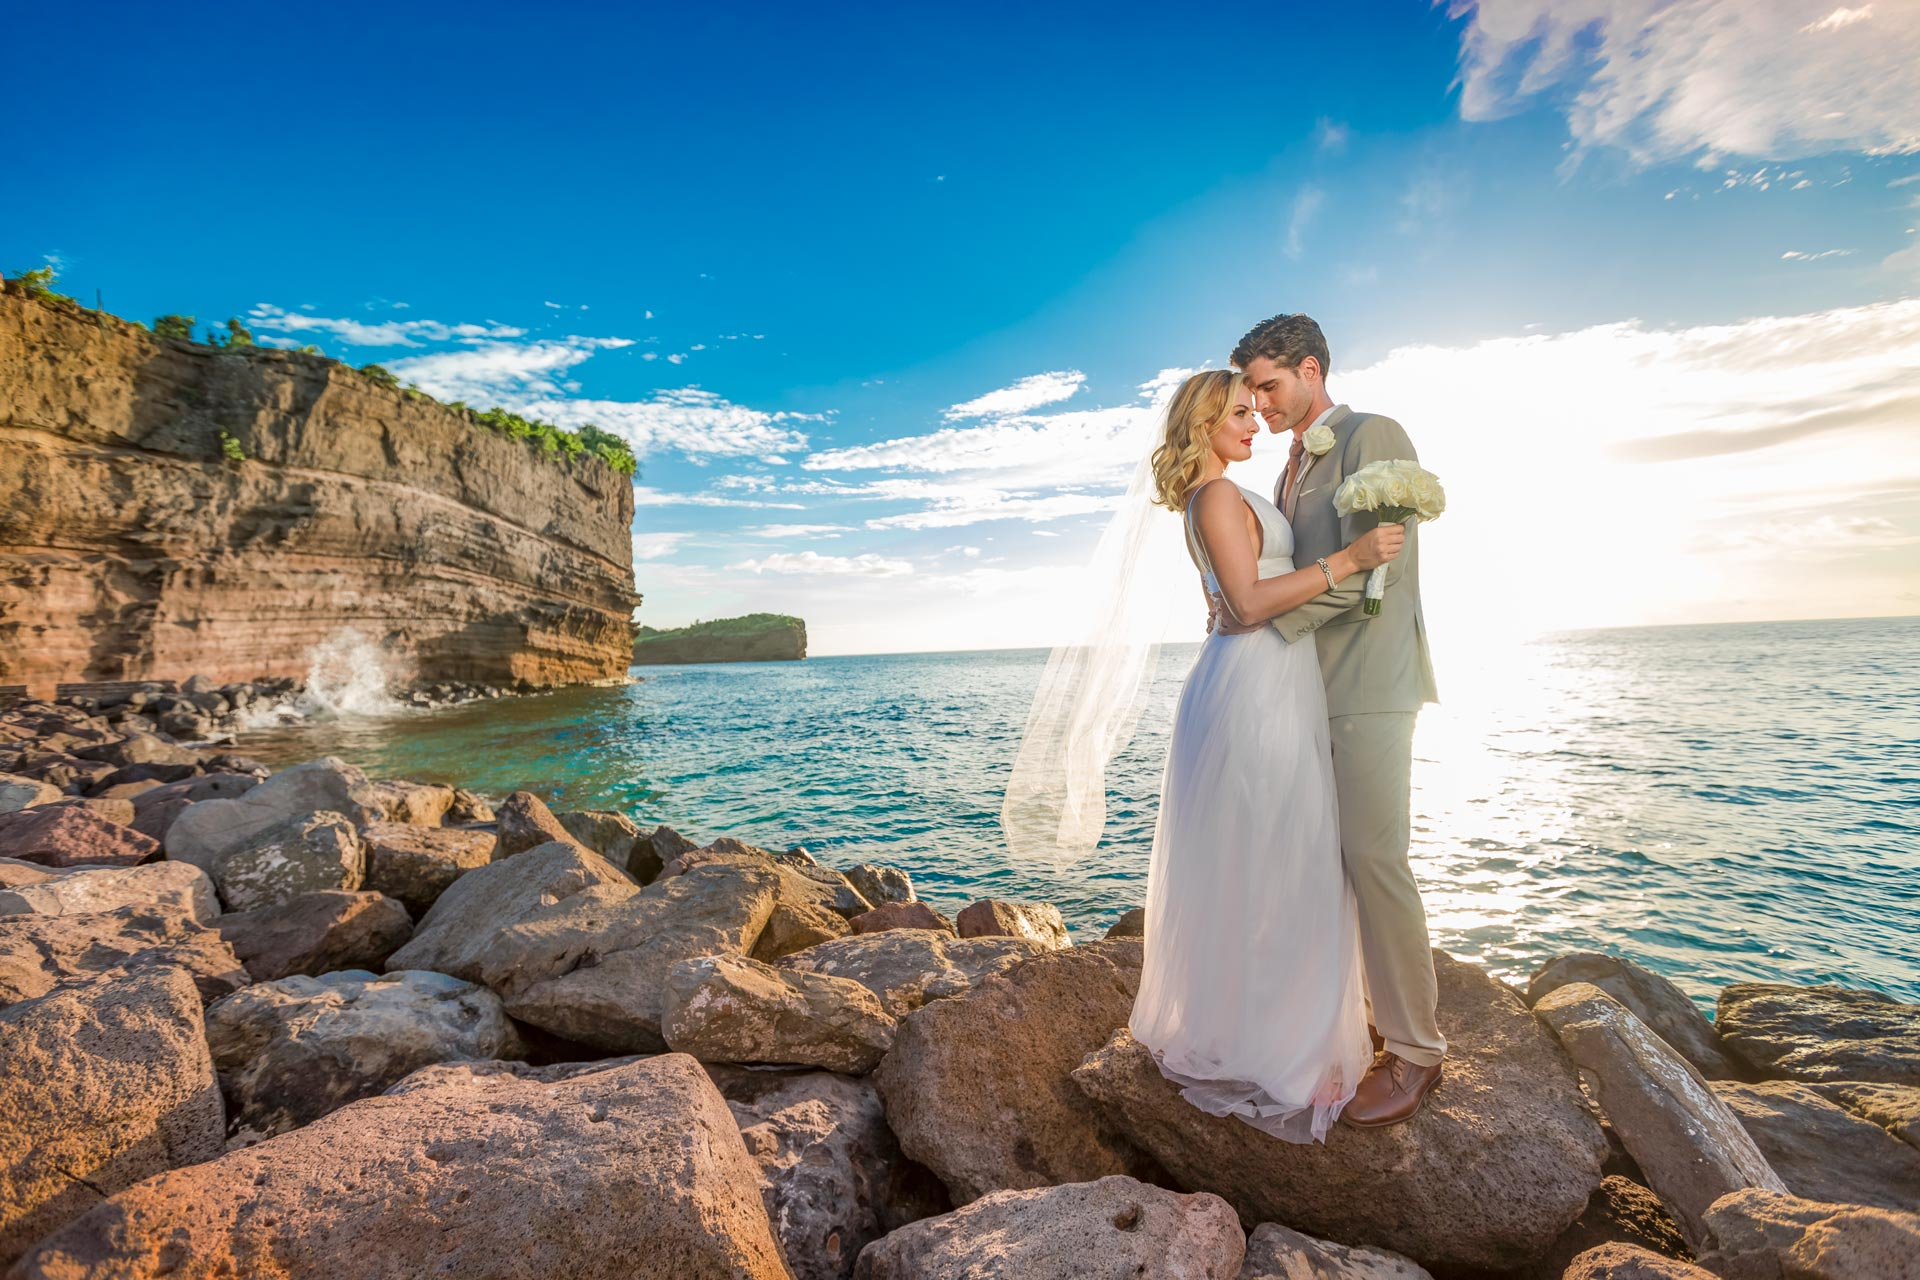 Elopement wedding on a cliff